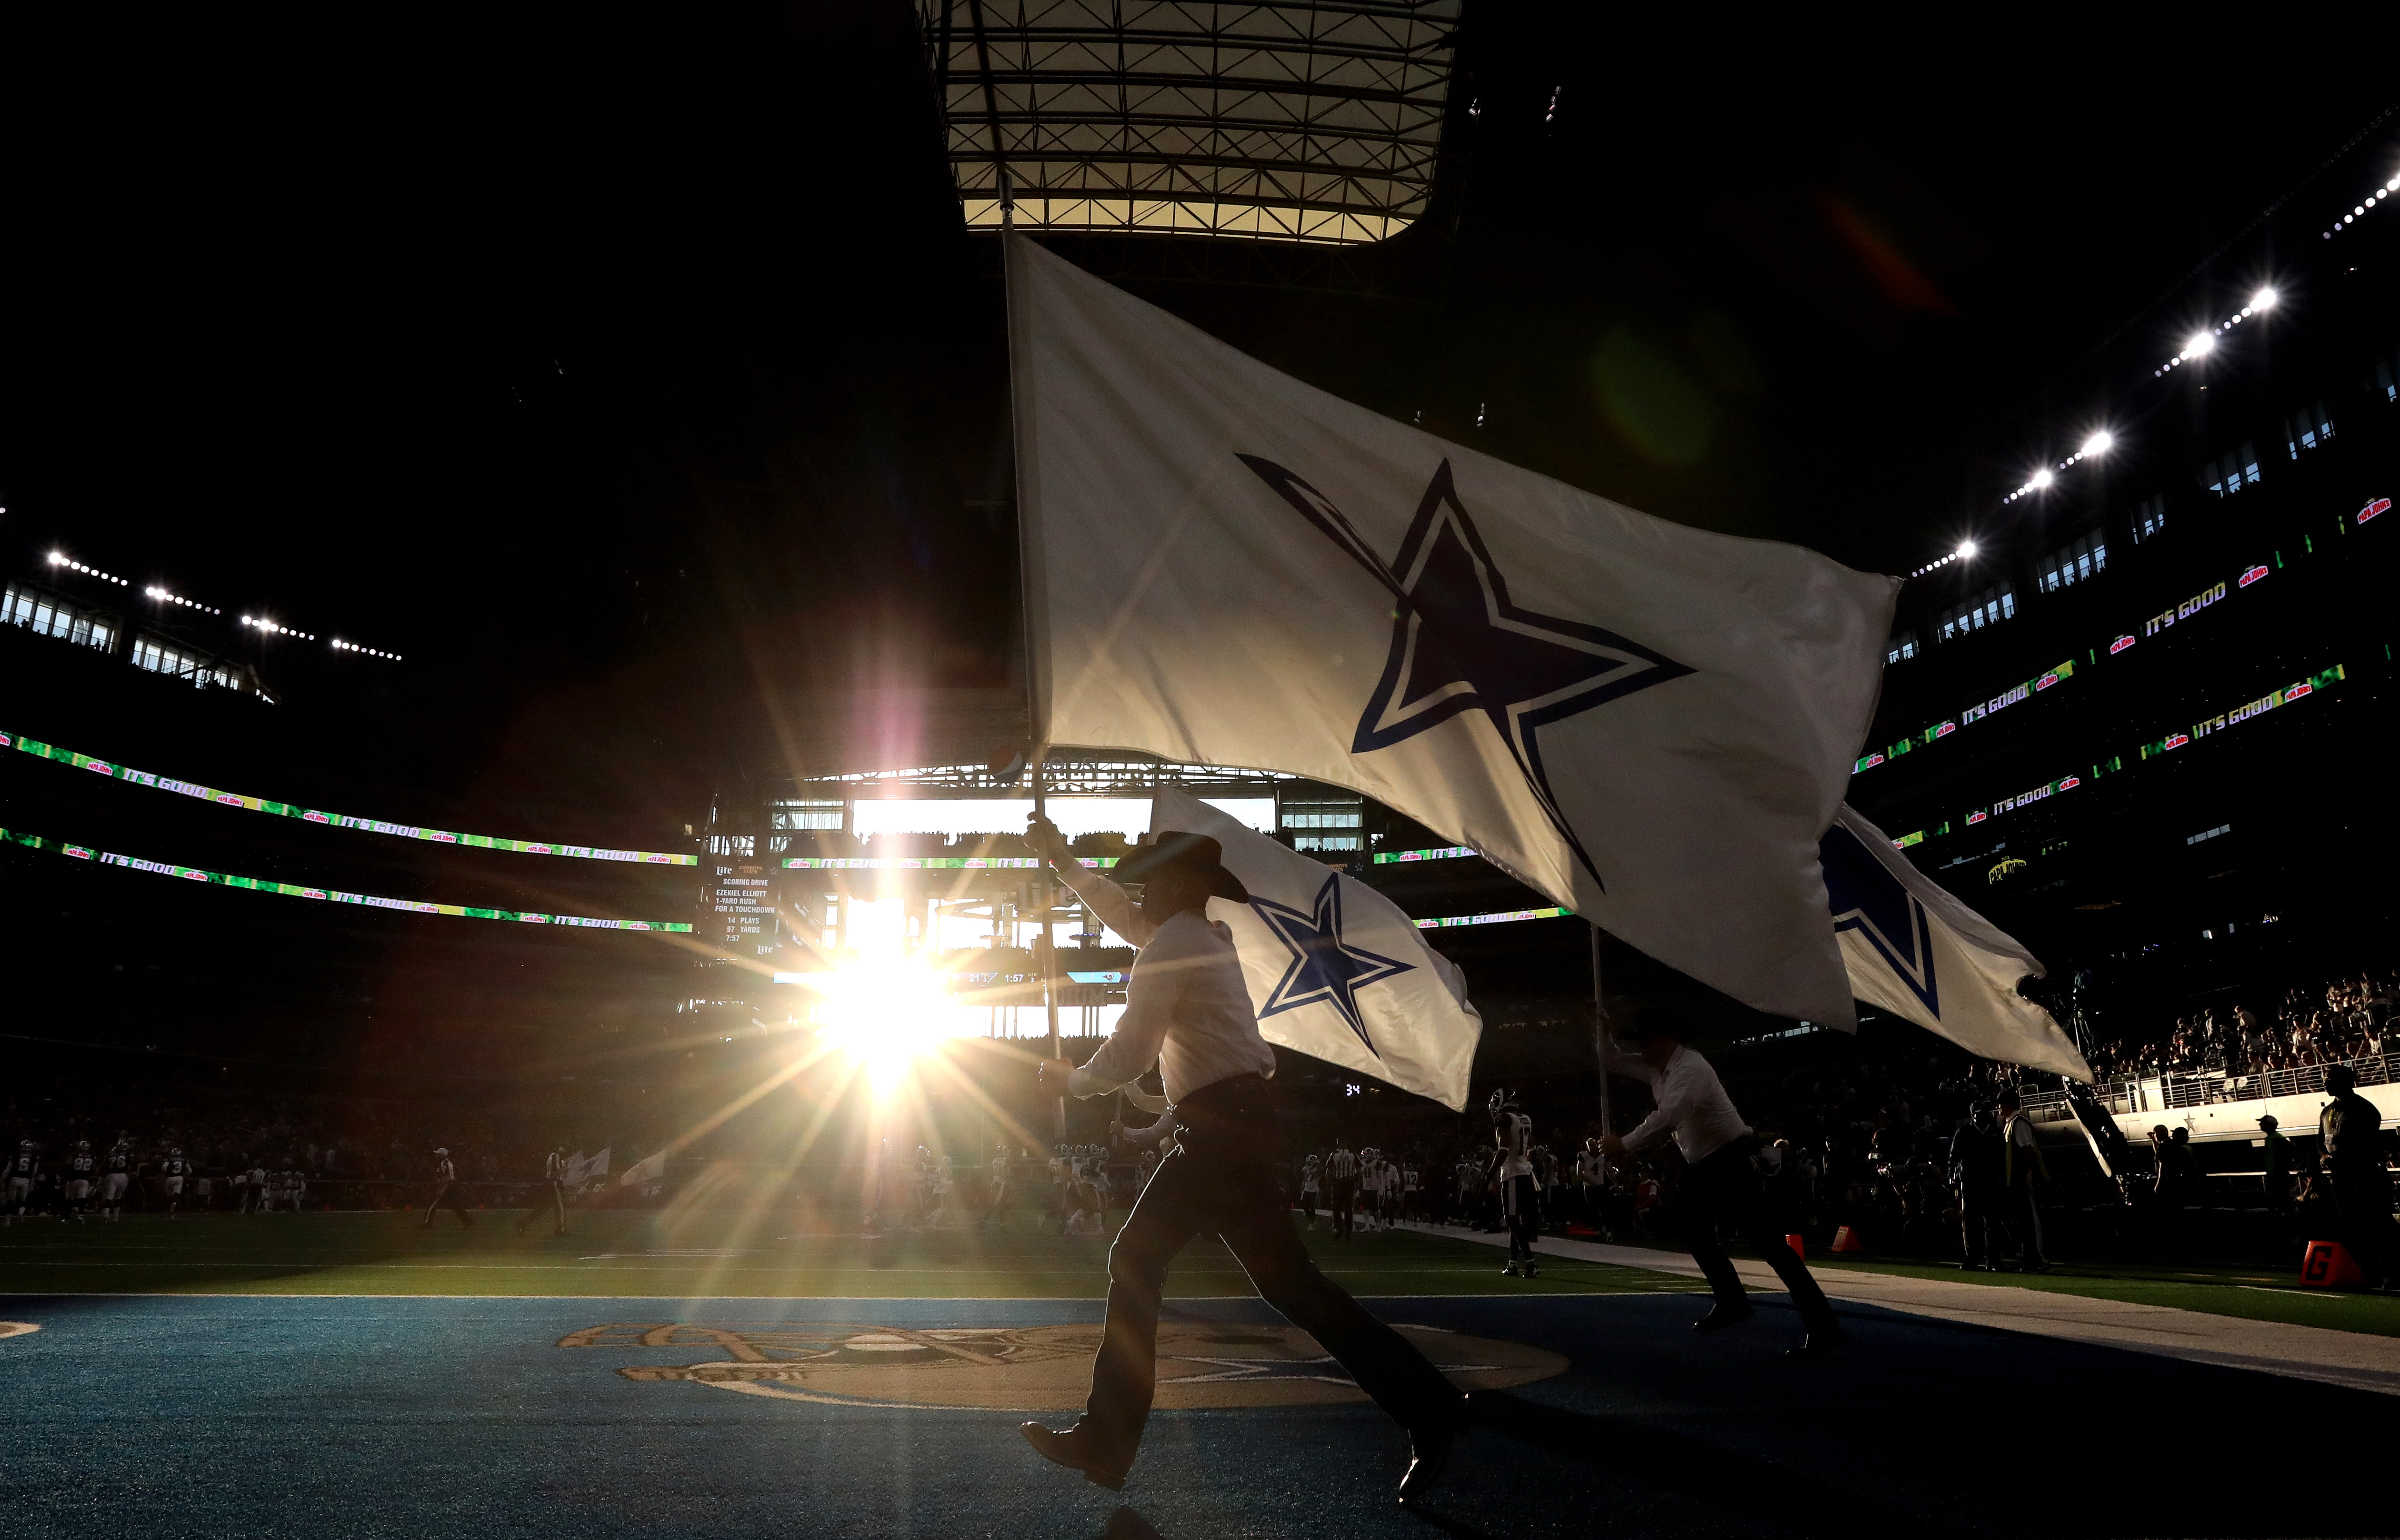 The Dallas Cowboys flag team runs on the field after a Cowboys touchdown against the Los Angeles Rams in Week 15, Dec. 15, 2019.